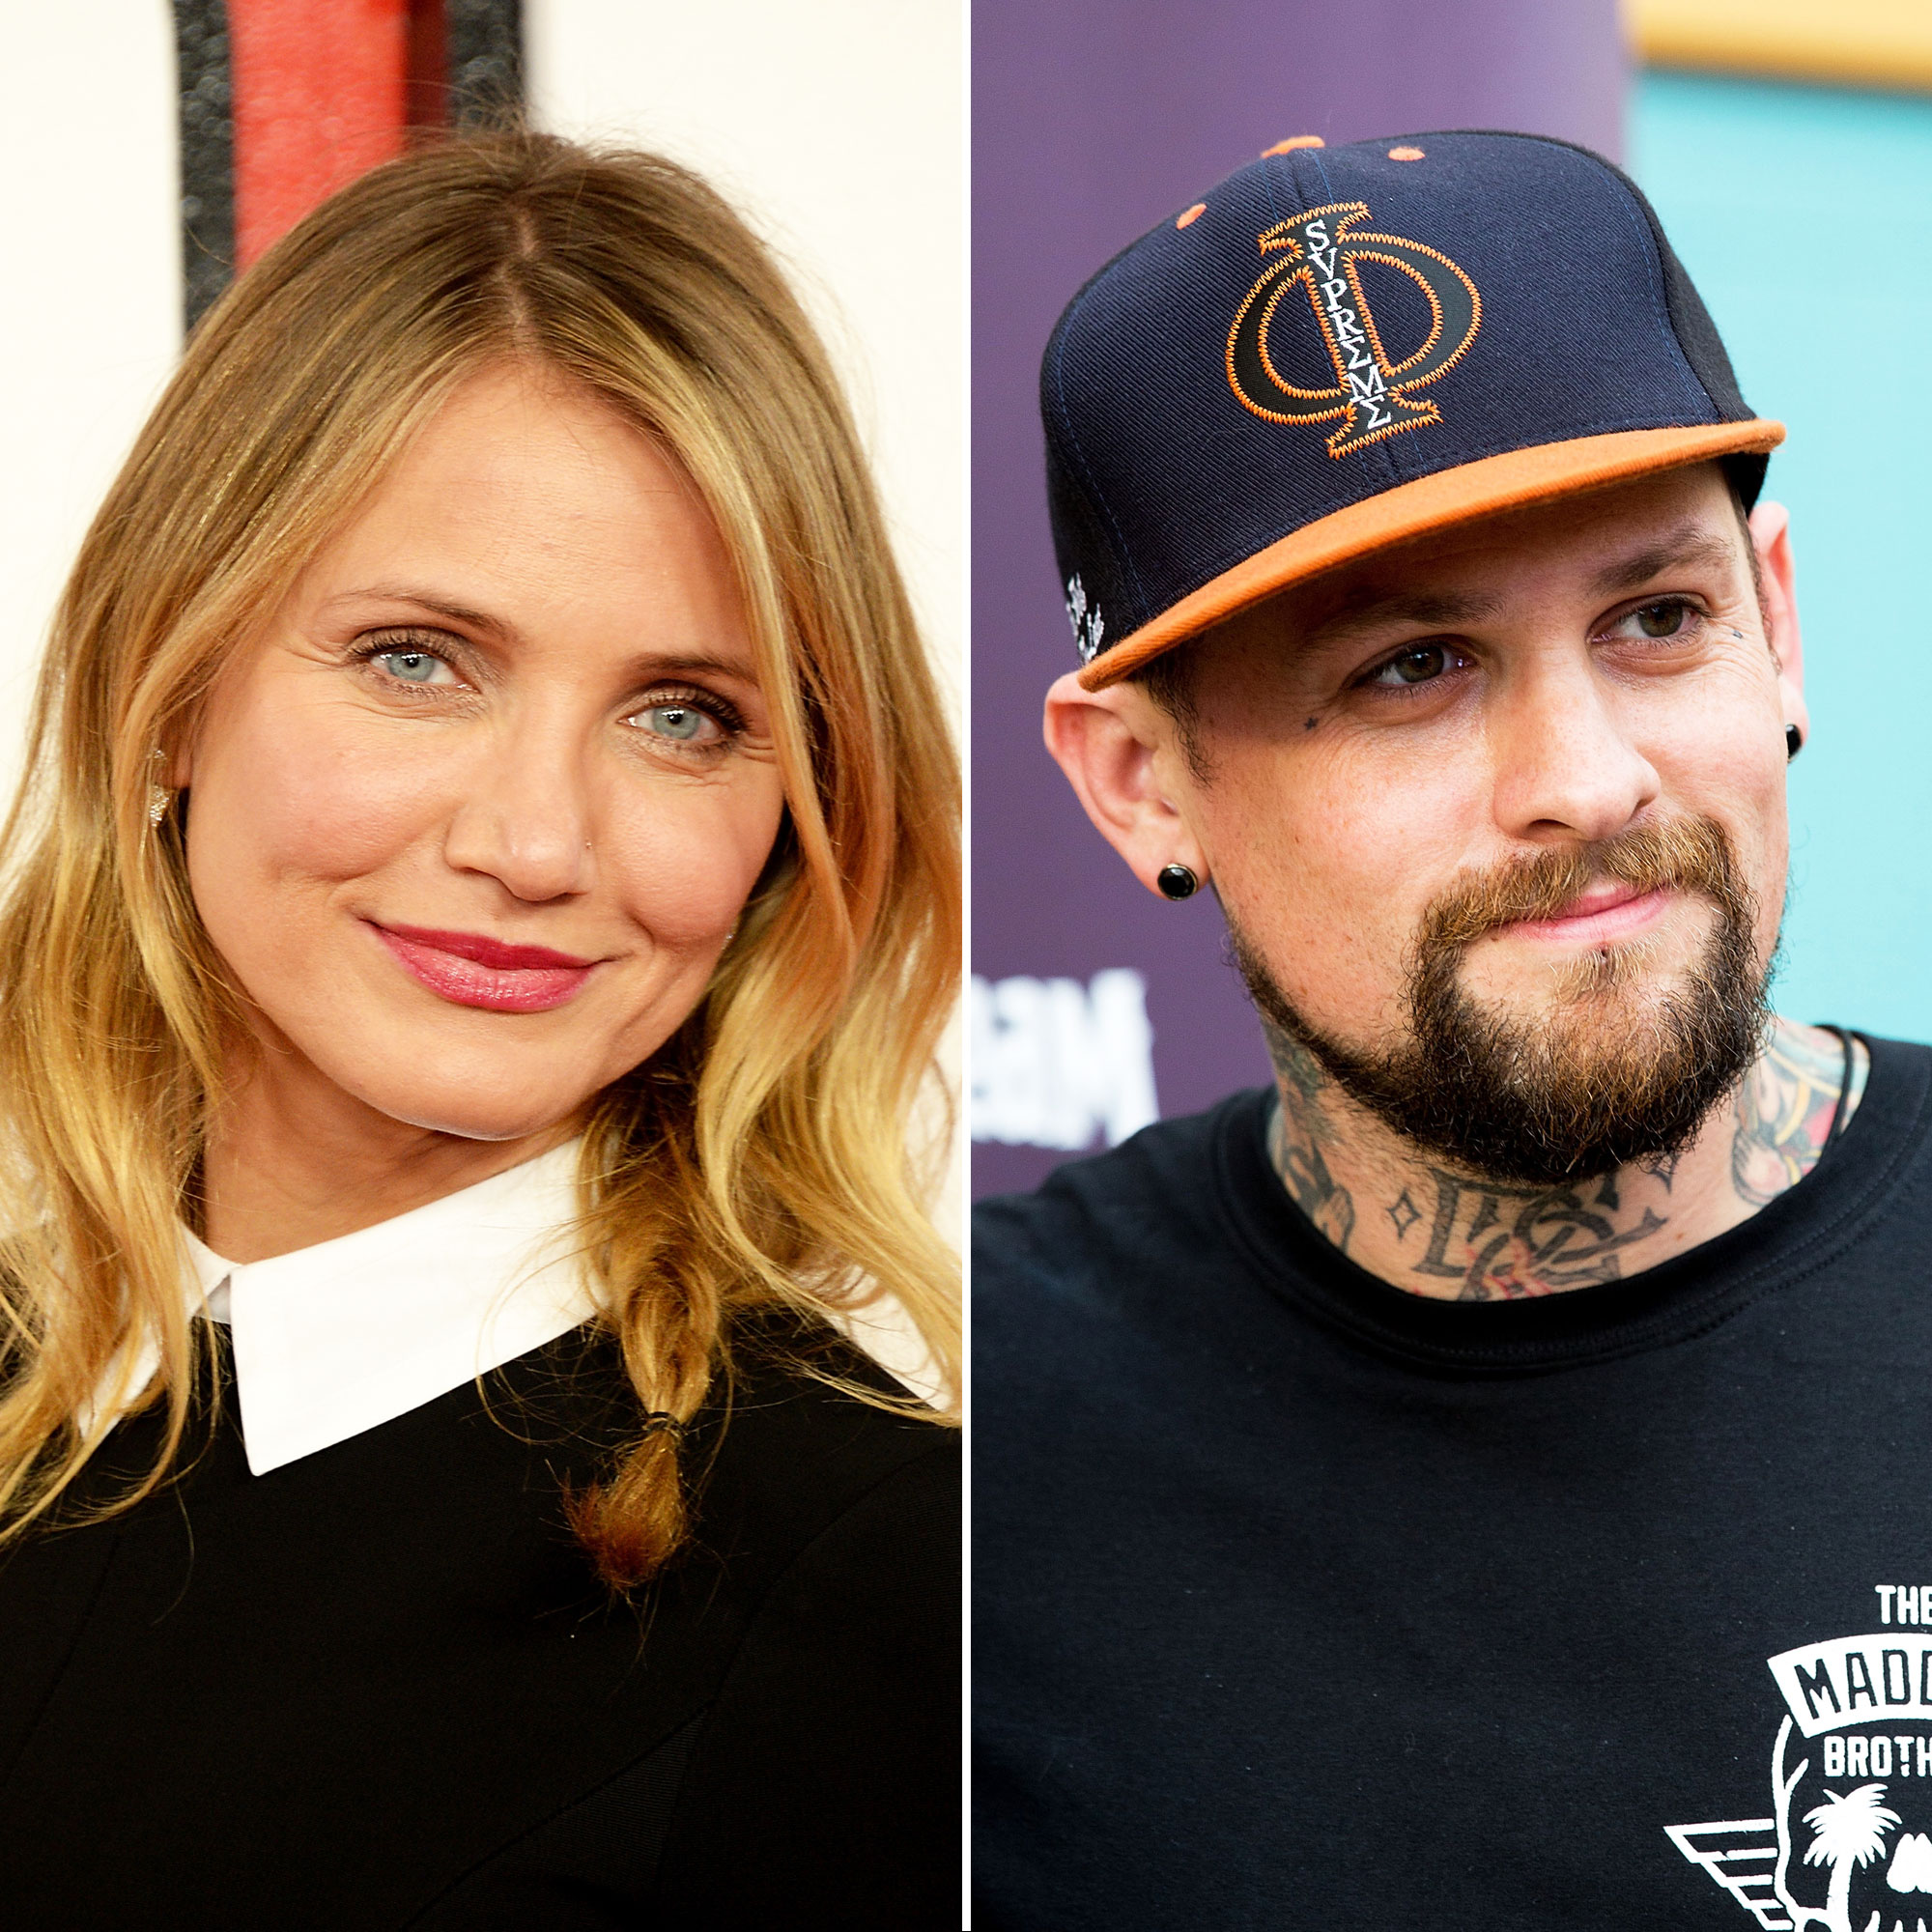 A Timeline of Cameron Diaz and Benji Madden's Private Relationship - Us Weekly broke the news in May 2014 that Diaz and Madden were dating . A source revealed at the time that the musician's sister-in-law Nicole Richie introduced the pair, which she confirmed on Watch What Happens Live With Andy Cohen in July 2014.